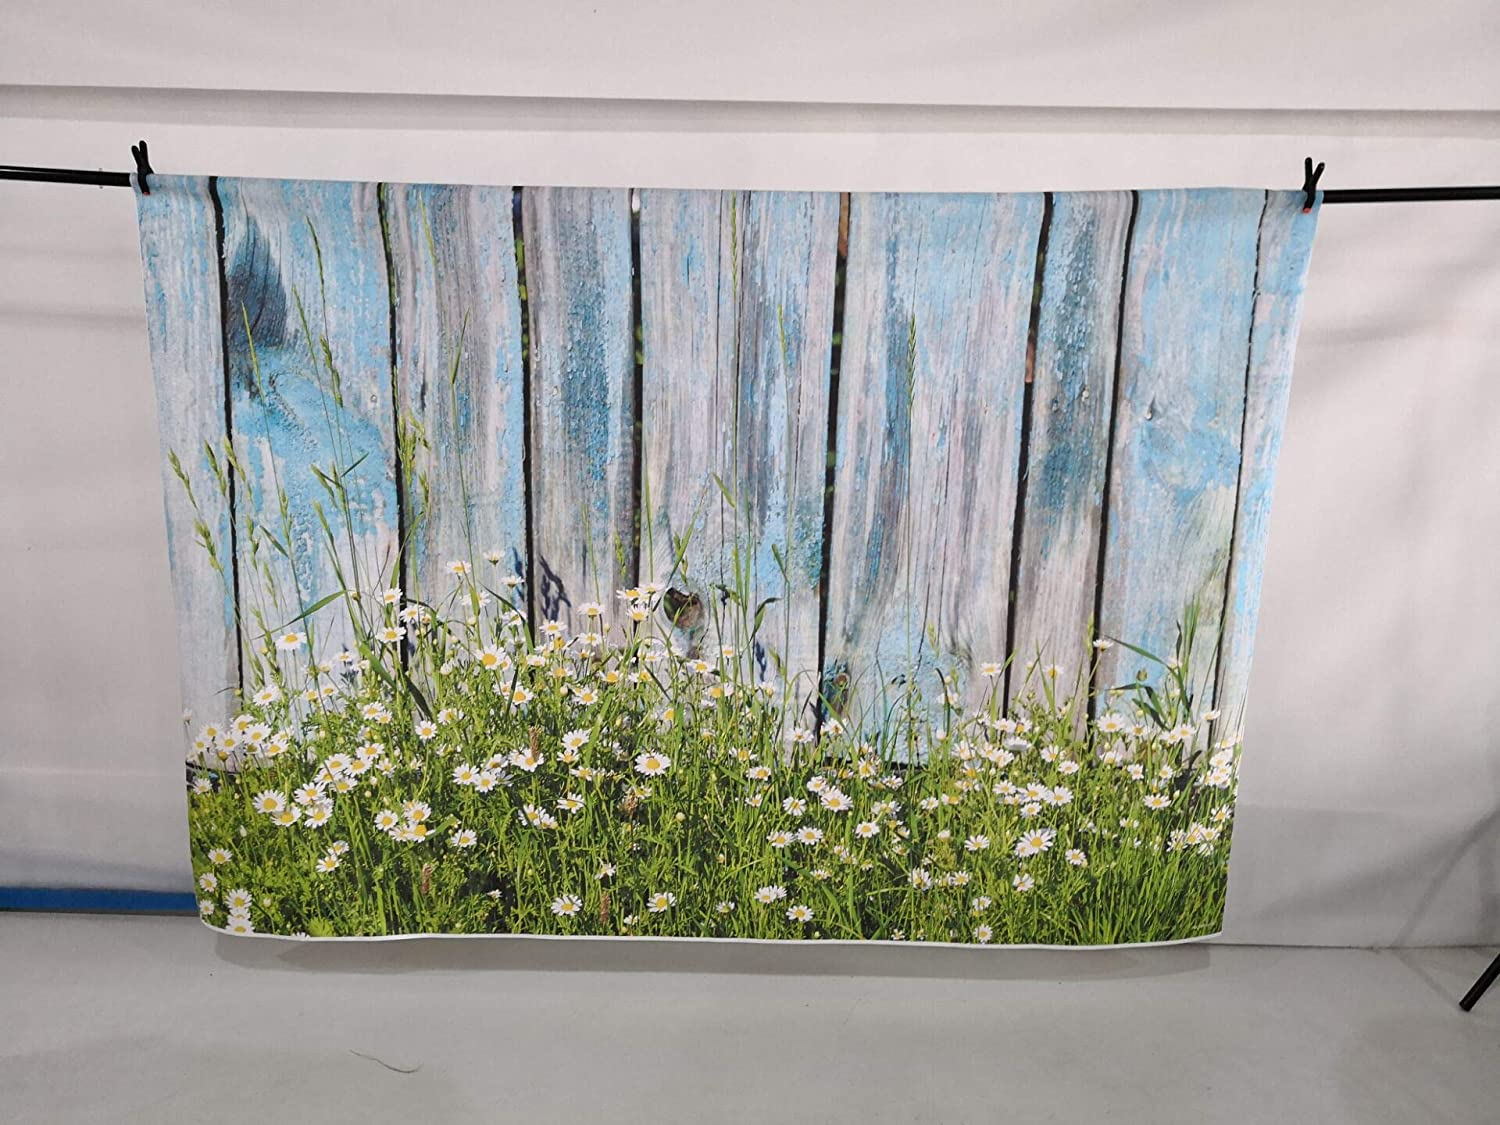 Funnytree 8x6ft Soft Fabric Spring Blue Wood Photography Backdrops Grass Daisy Flower Wooden Board Plank Easter Grass Background Pictures Party Banner Decorations Photo Studio Photobooth Props